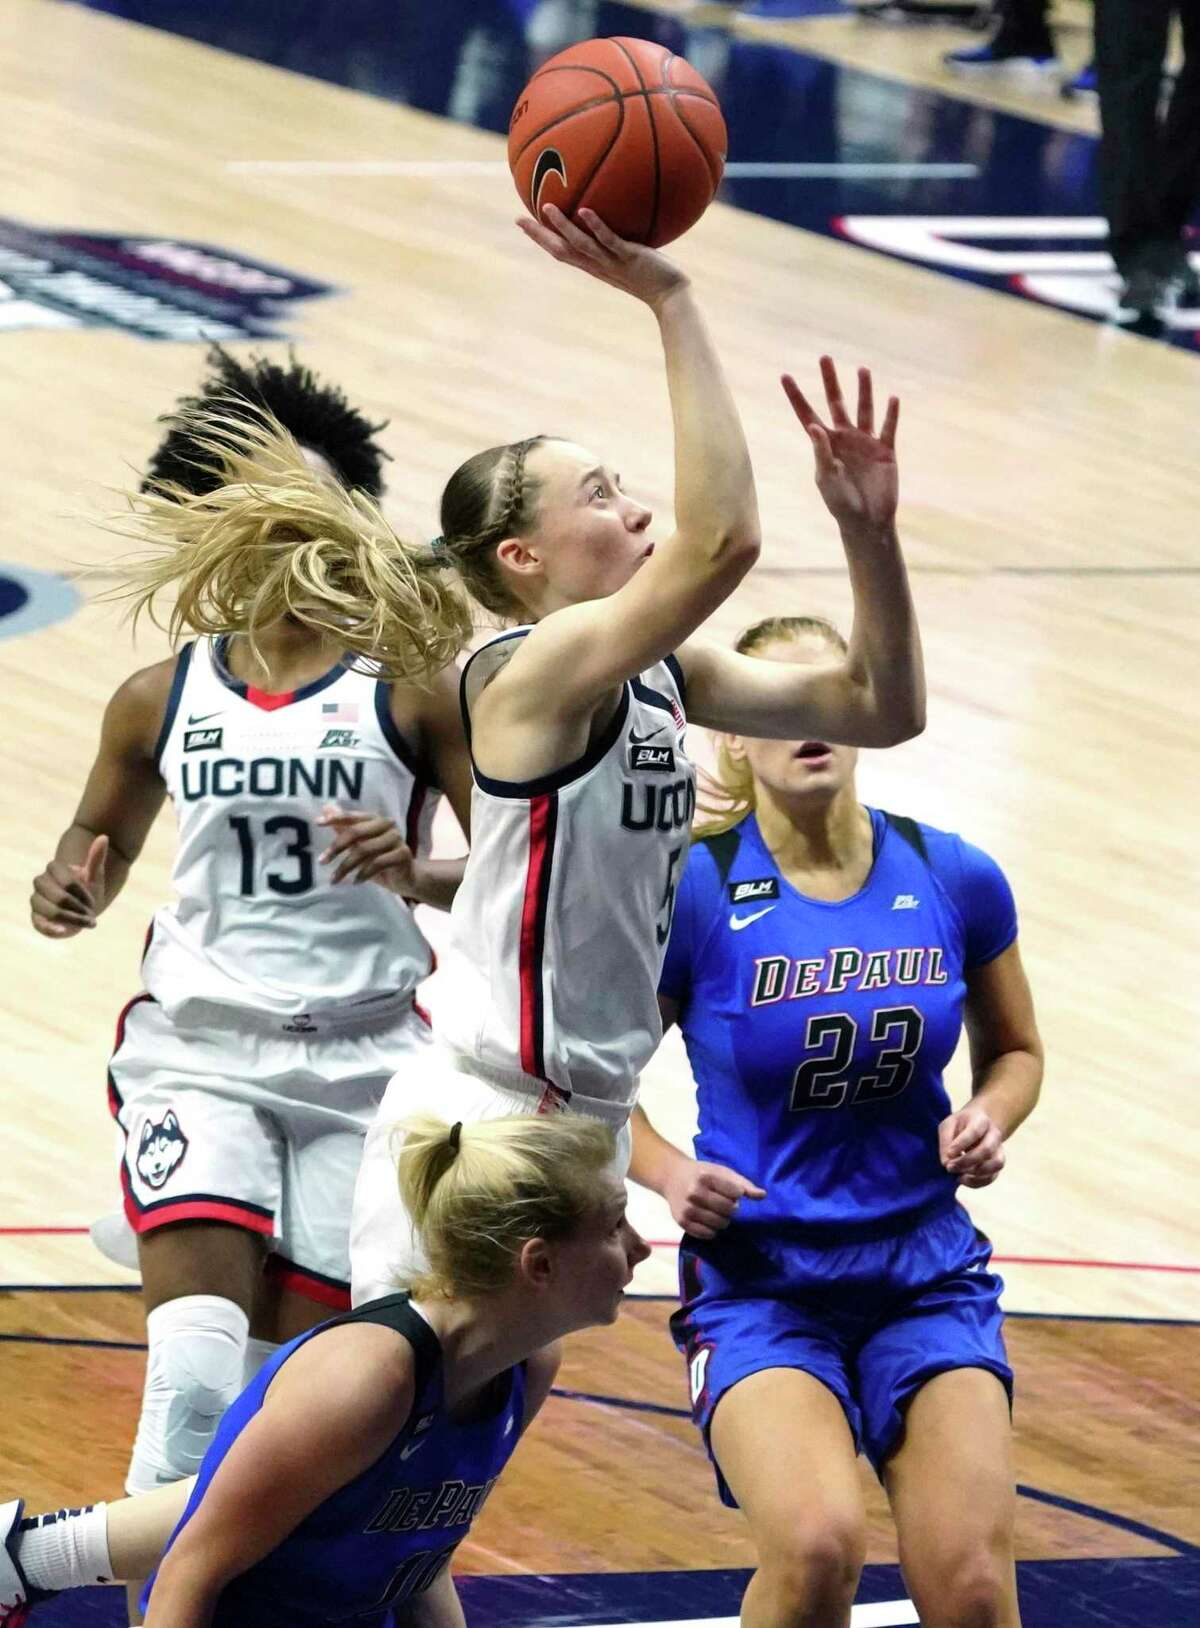 Connecticut guard Paige Bueckers (5) drives to the basket against DePaul during the second halfof an NCAA college basketball game Tuesday, Dec. 29, 2020, in Storrs, Conn. (David Butler II/Pool Photo via AP